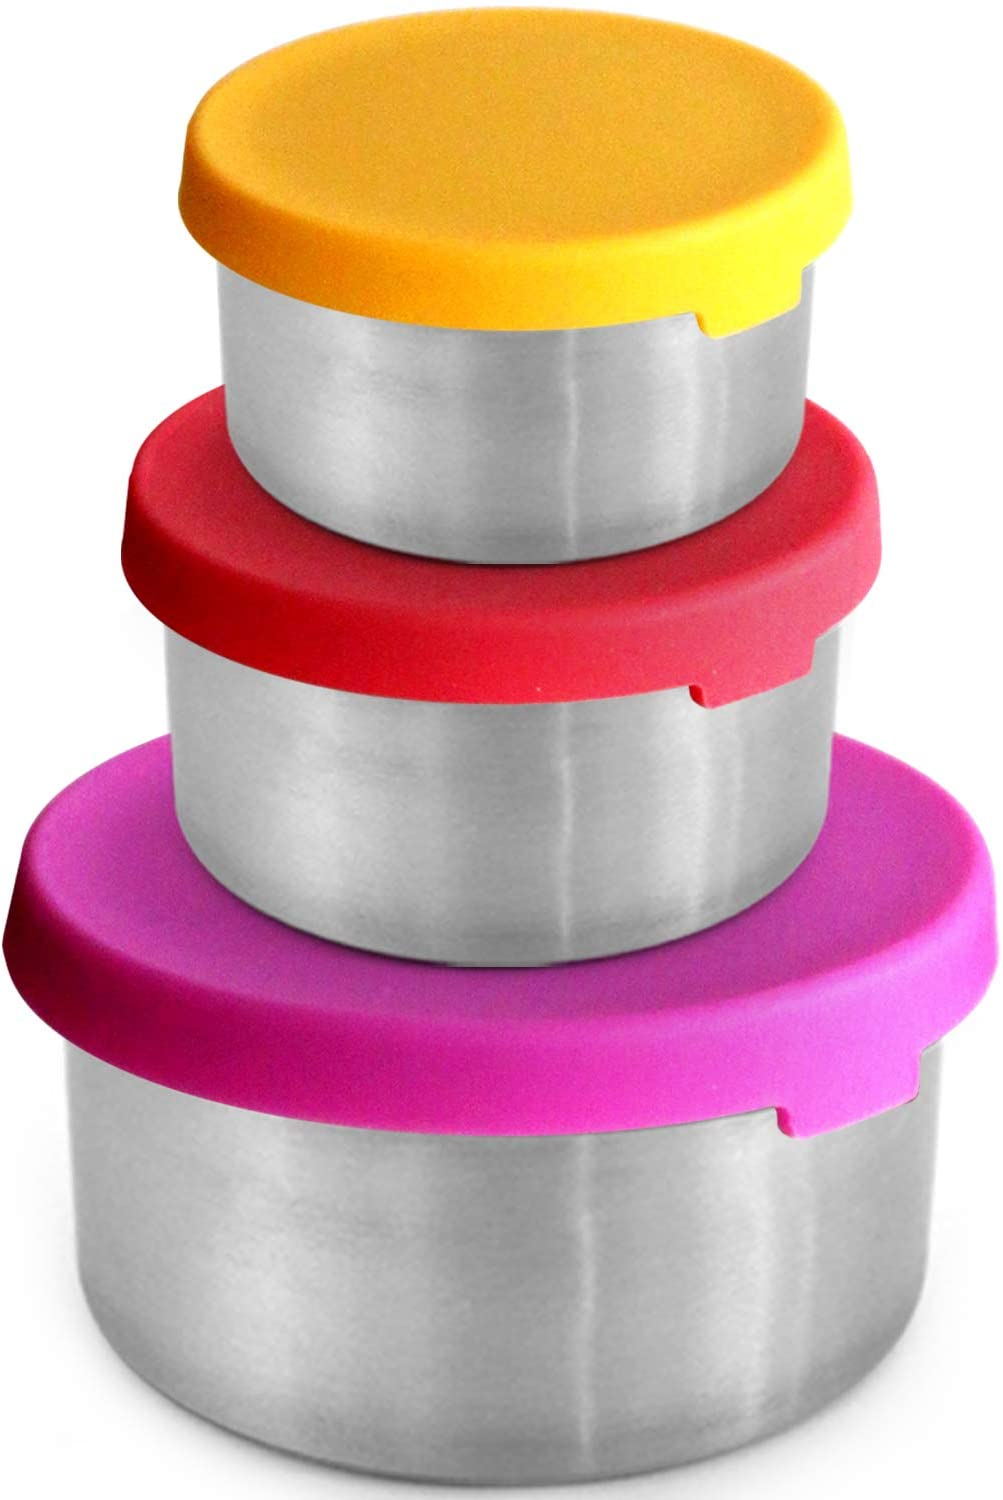 Stainless Steel Snack Containers - Plastic Free | Leakproof Snack Pots | Silicone Lids | Reusable | Stackable - for Healthy Snacks, Lunch Dips, Camping Food [Set of 3: 4oz/ 7oz/ 14oz]